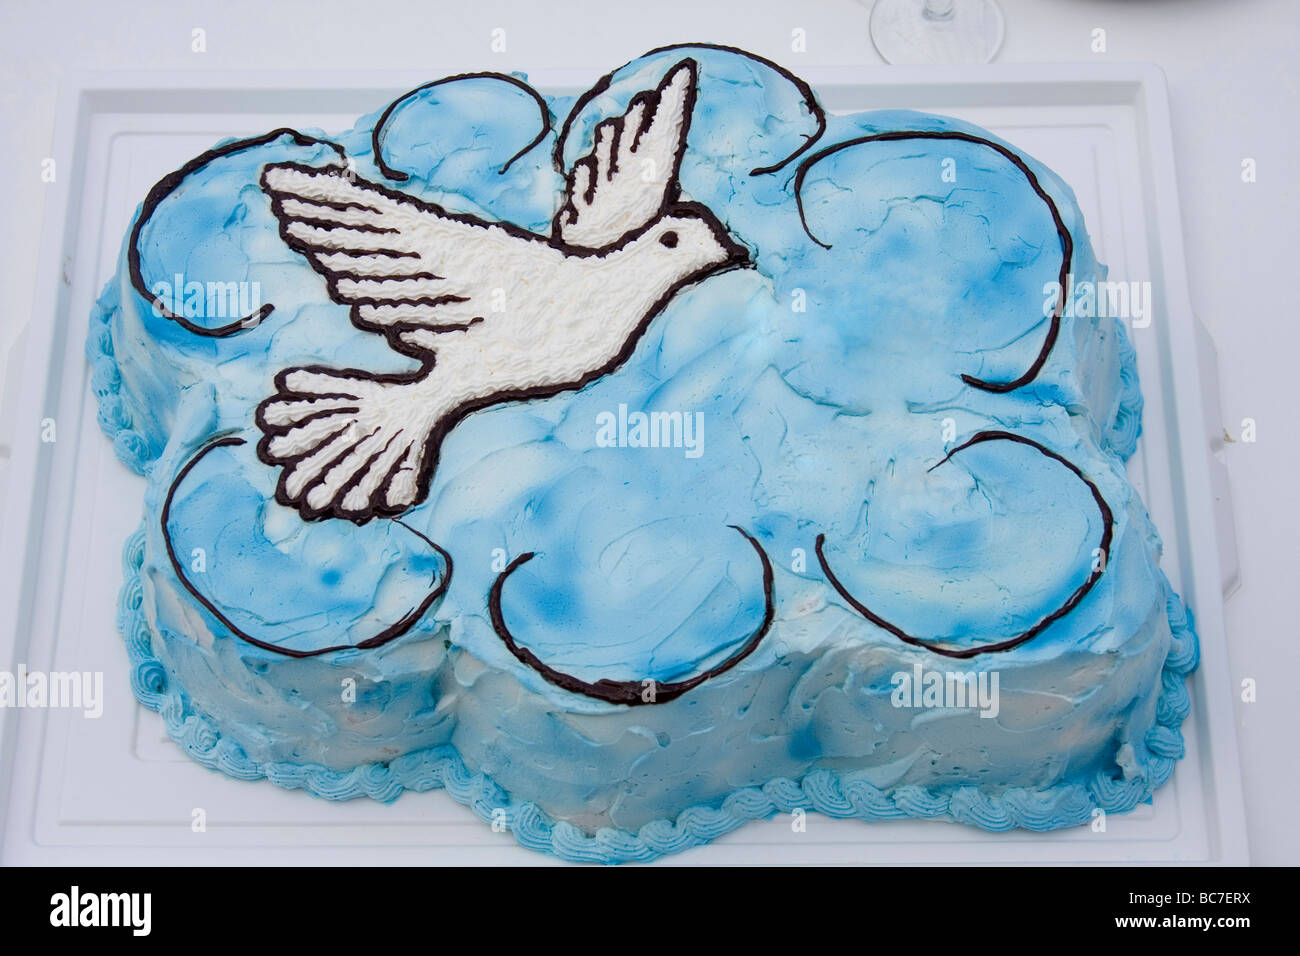 Cake In The Shape Of Blue Cloud And White Bird